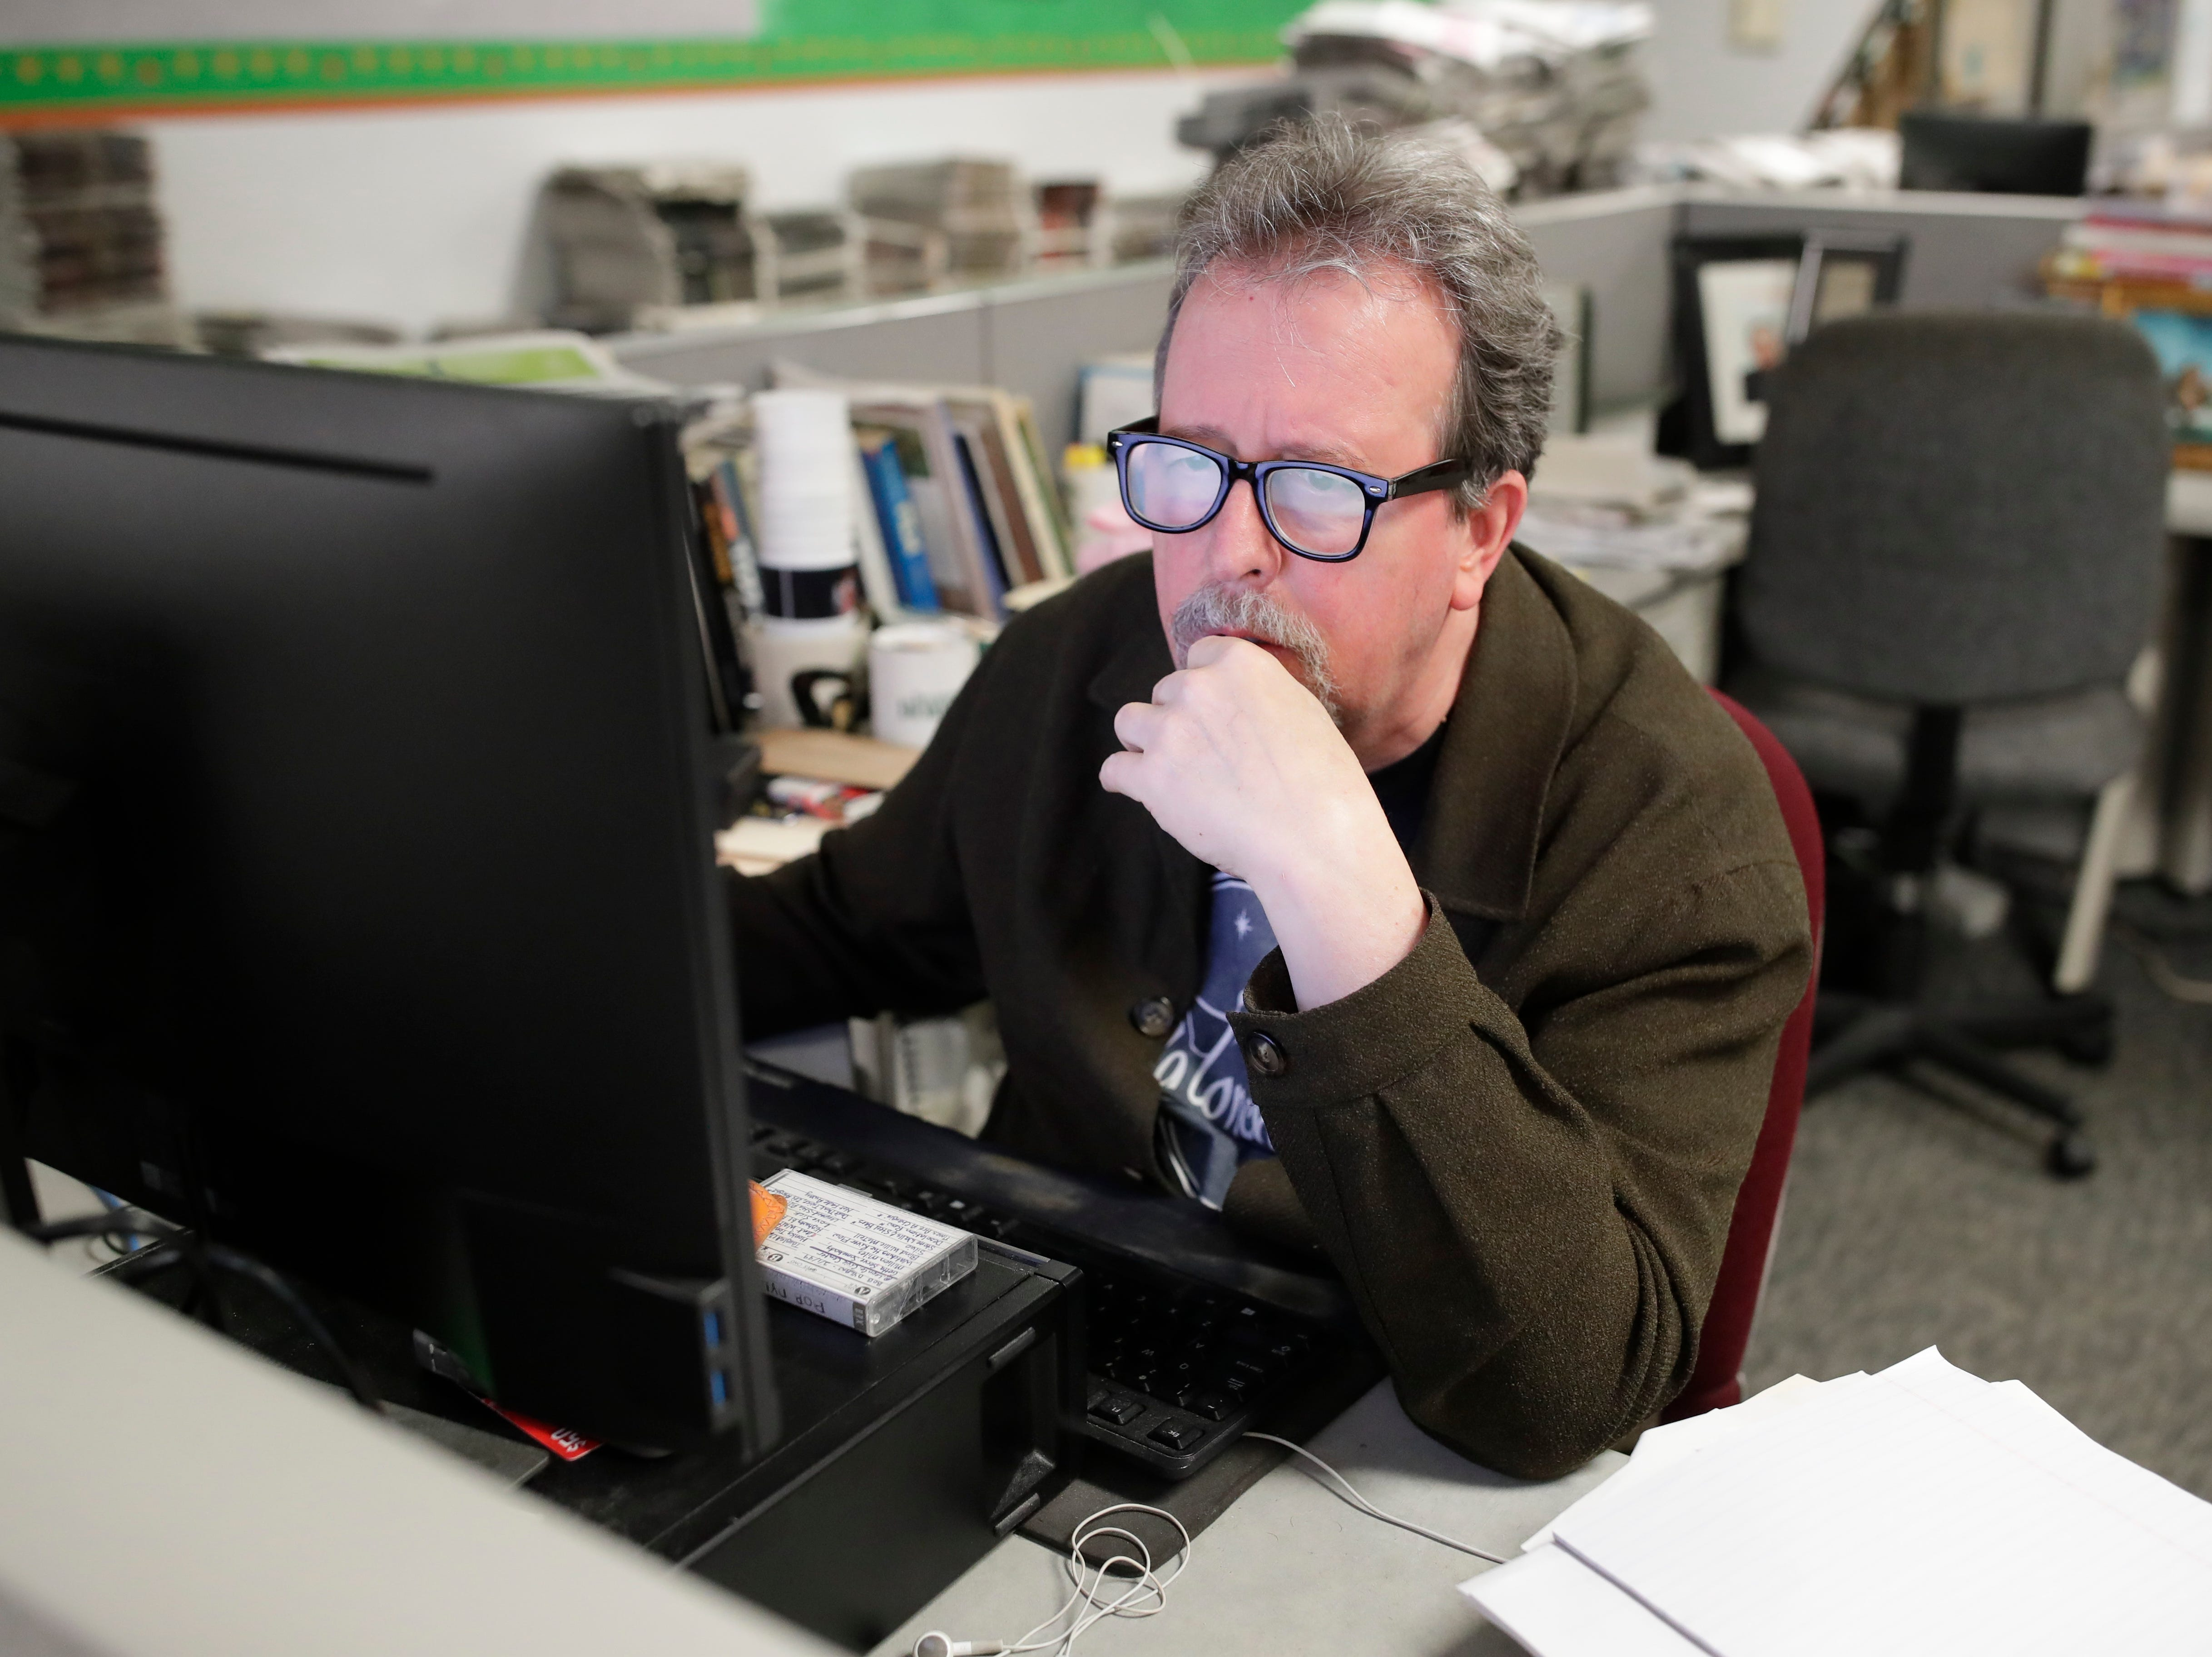 Former Arts and Entertainment Editor Mark Hinson works at this desk on his last day at the Tallahassee Democrat Wednesday, Jan. 2, 2019.